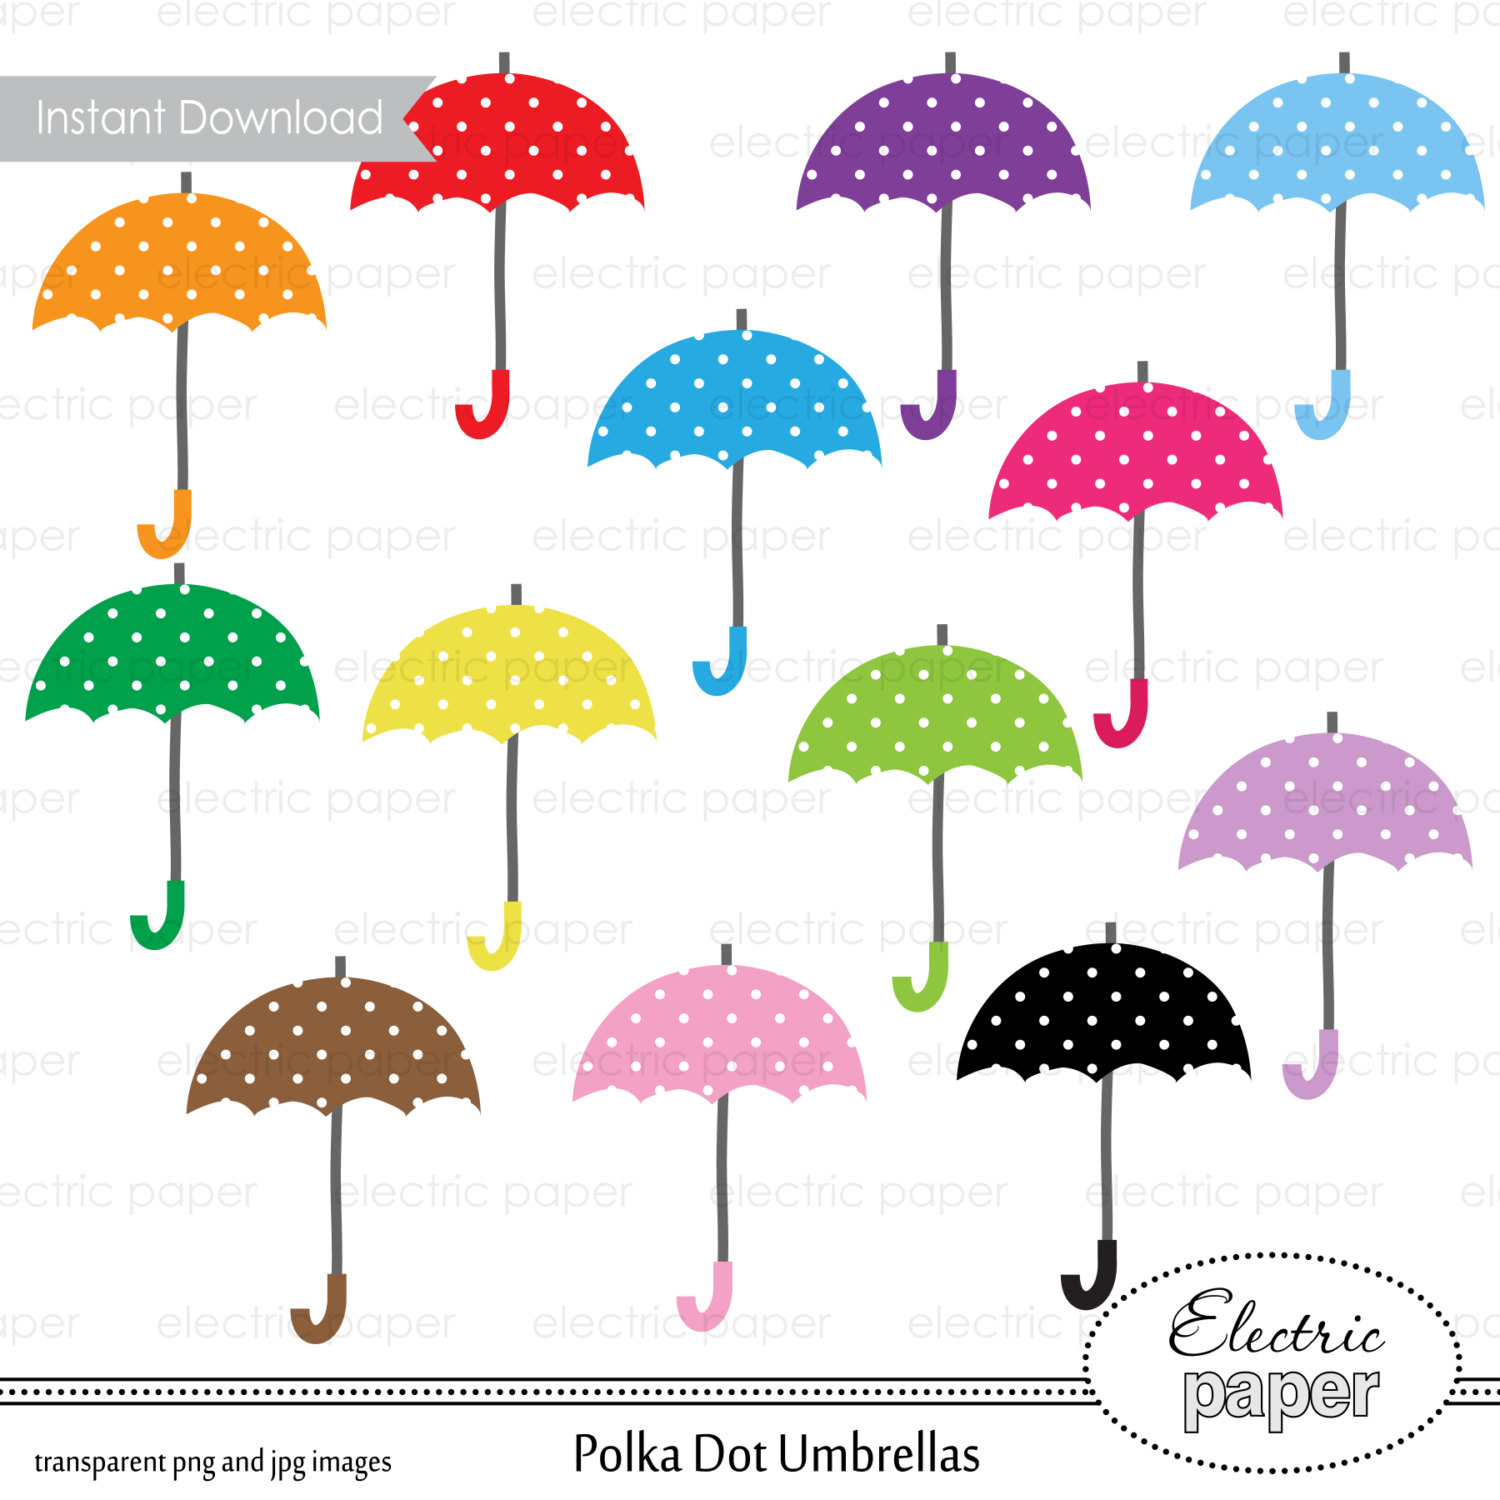 Clipart Rainy Day Umbrella.